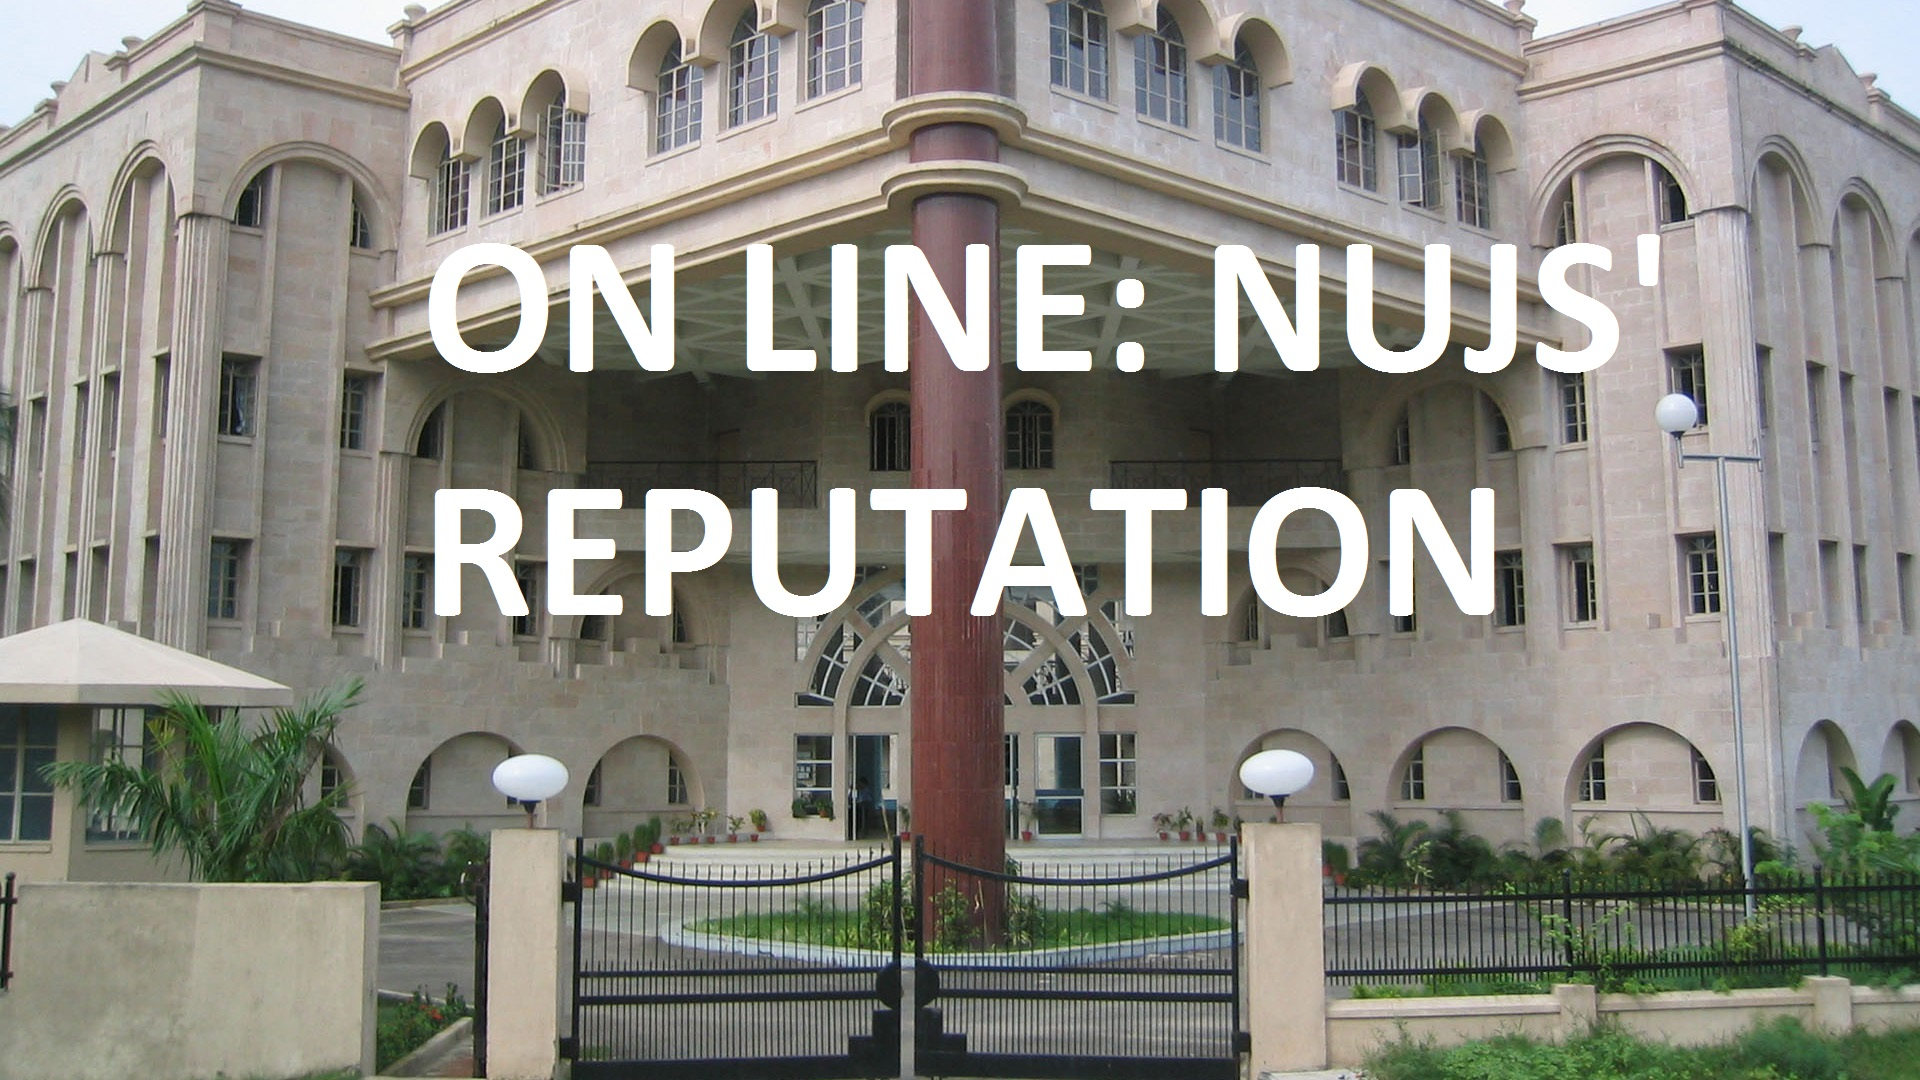 Are You a Student of NUJS Online Courses? Join Me in Taking Legal Action [DOWNLOAD SAMPLES]